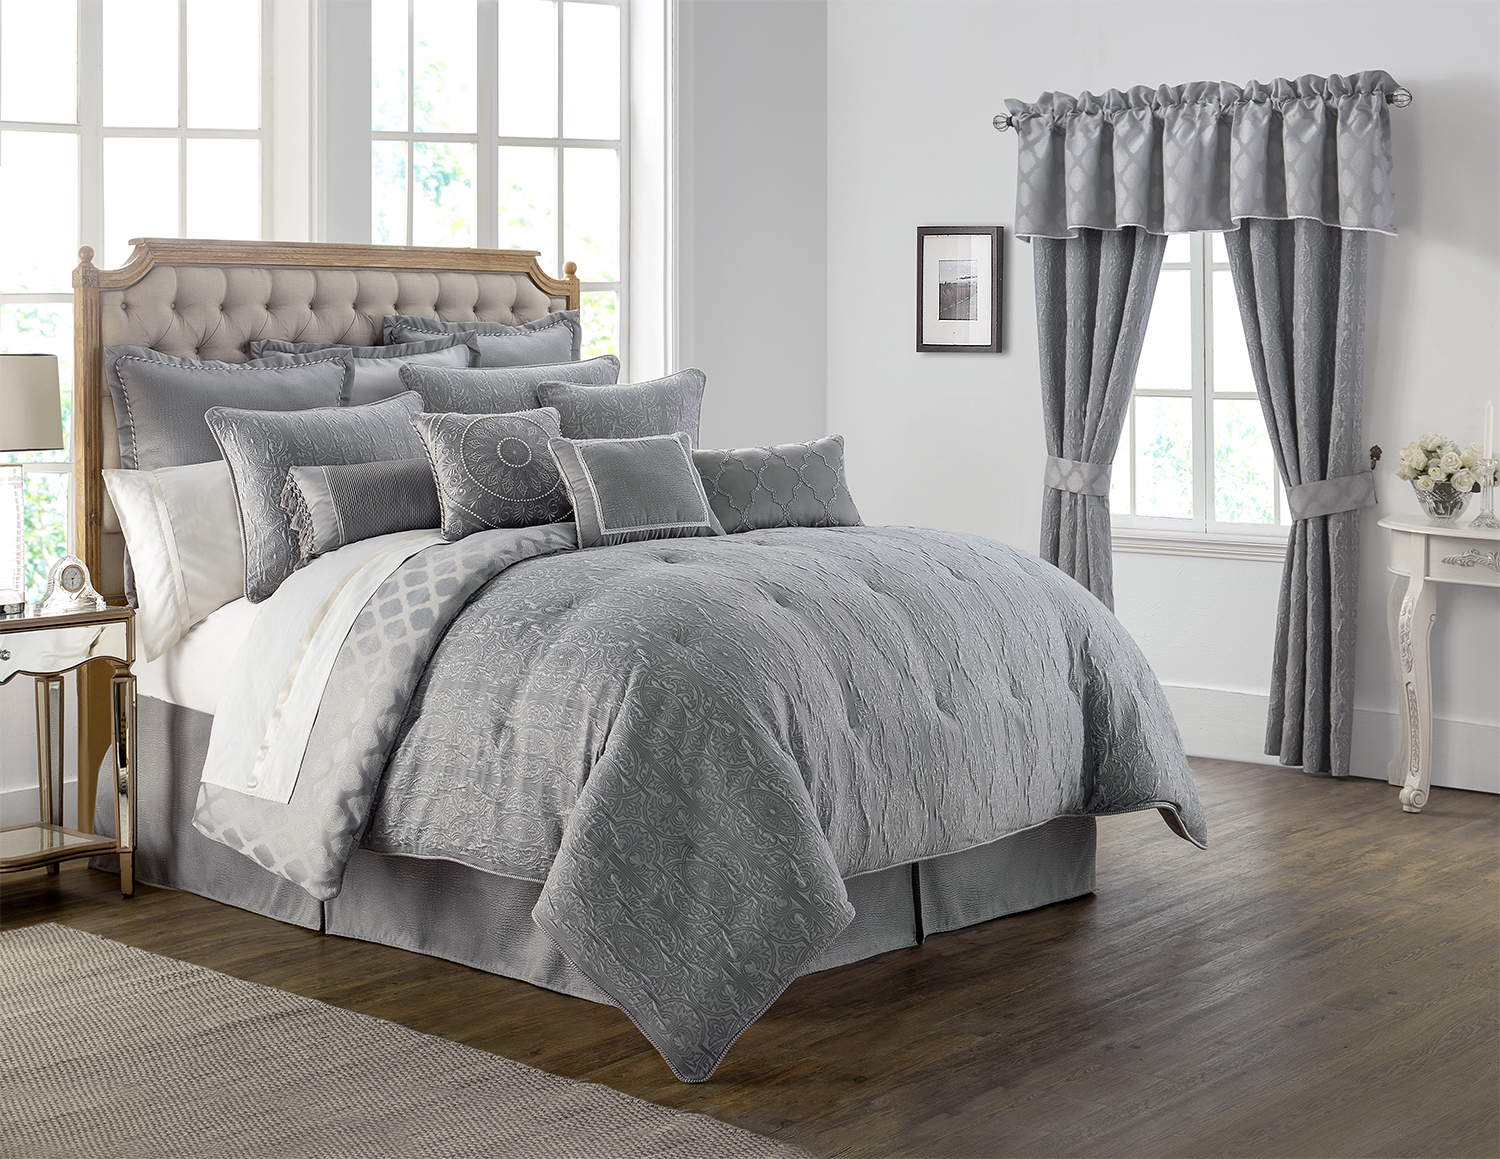 Carlisle Platinum By Waterford Luxury Bedding